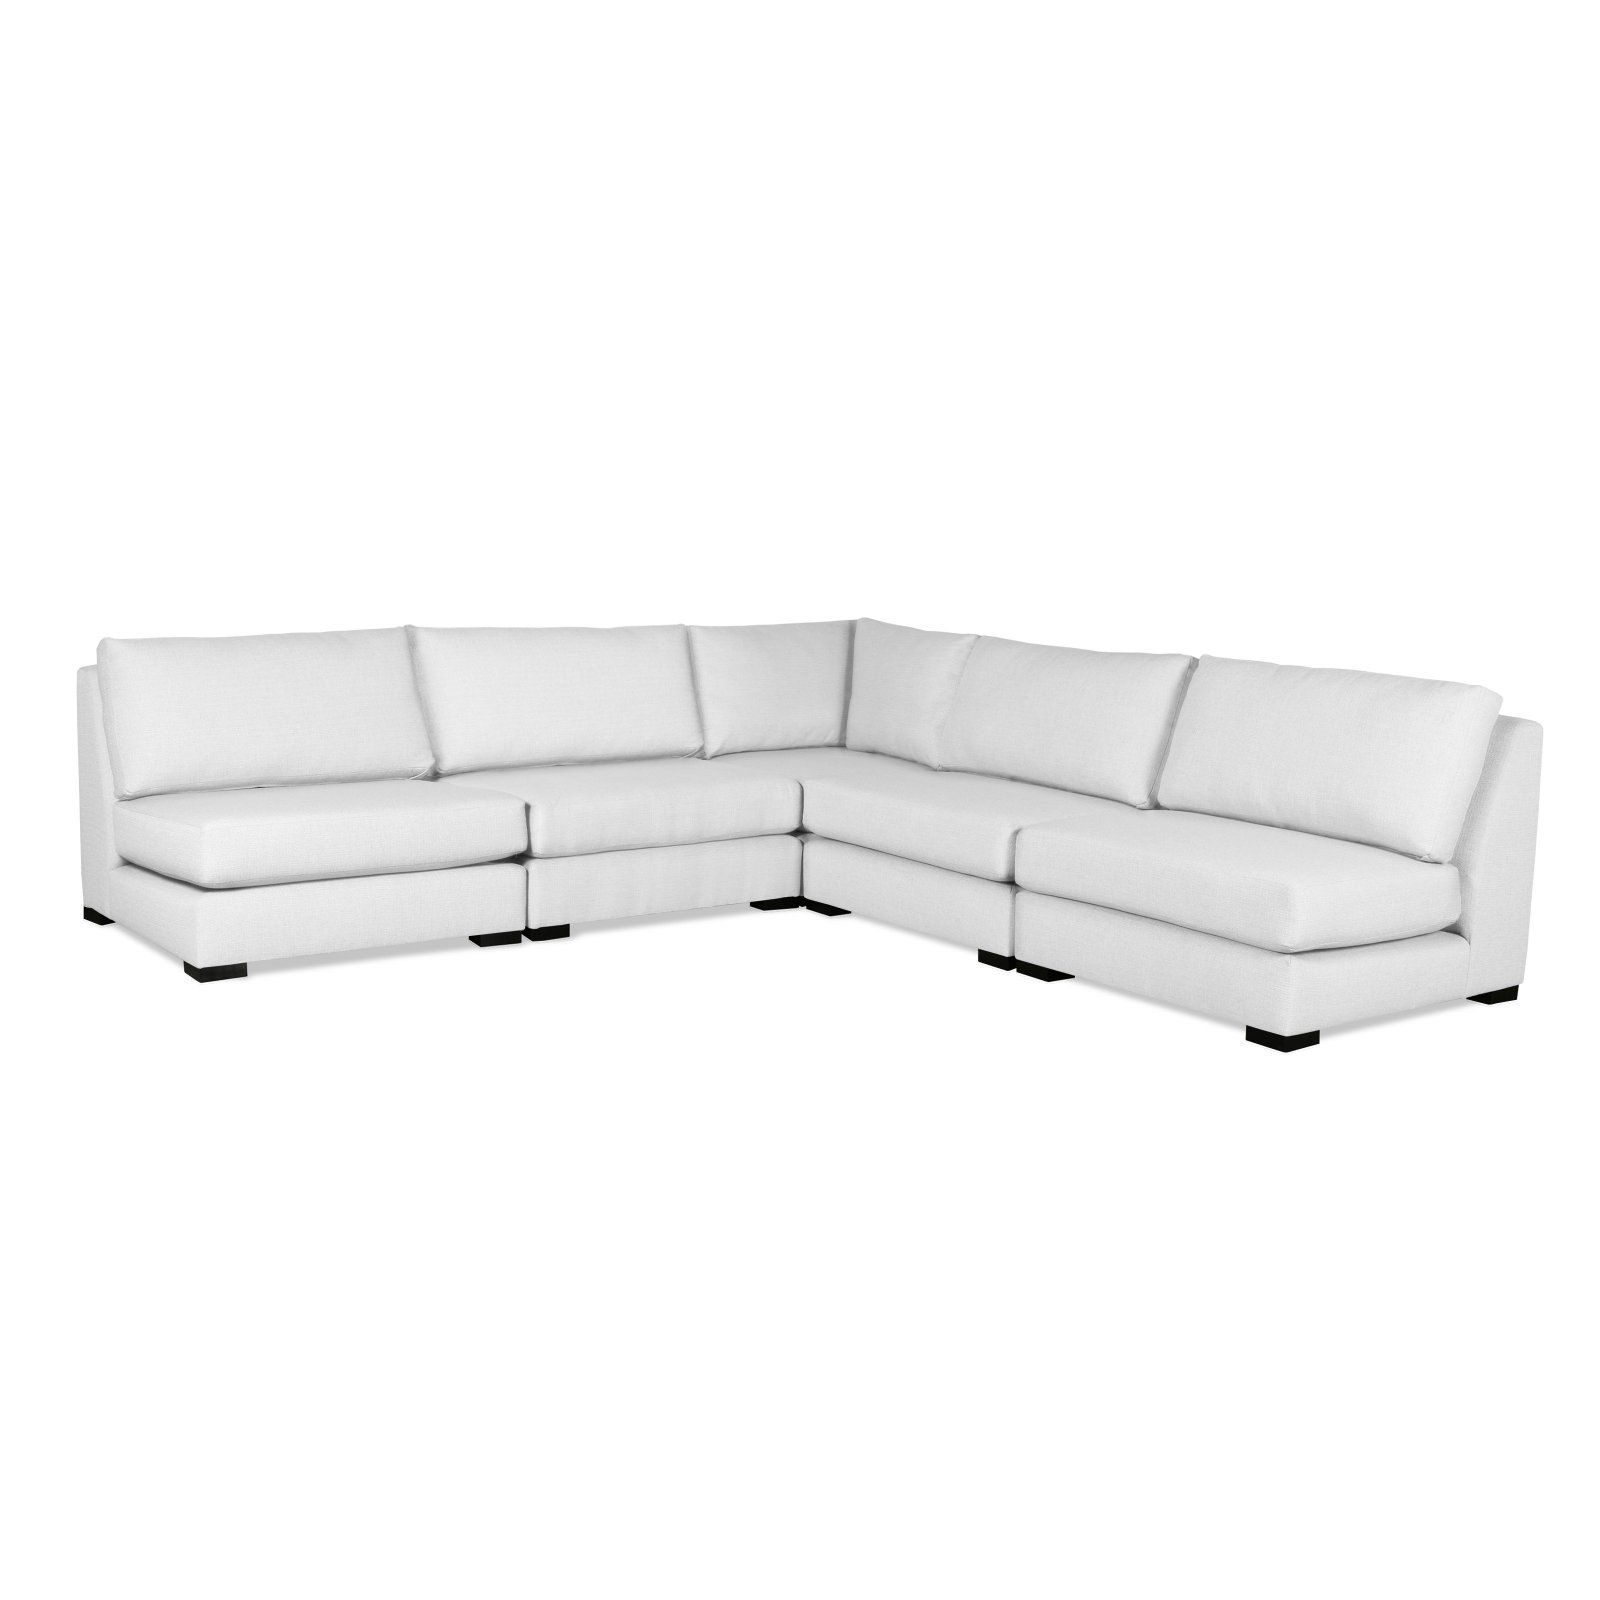 South Cone Yorkshire L Shape Simple Sectional Sofas White Sectional Sofa Sale Sectional Sofa Deep Sectional